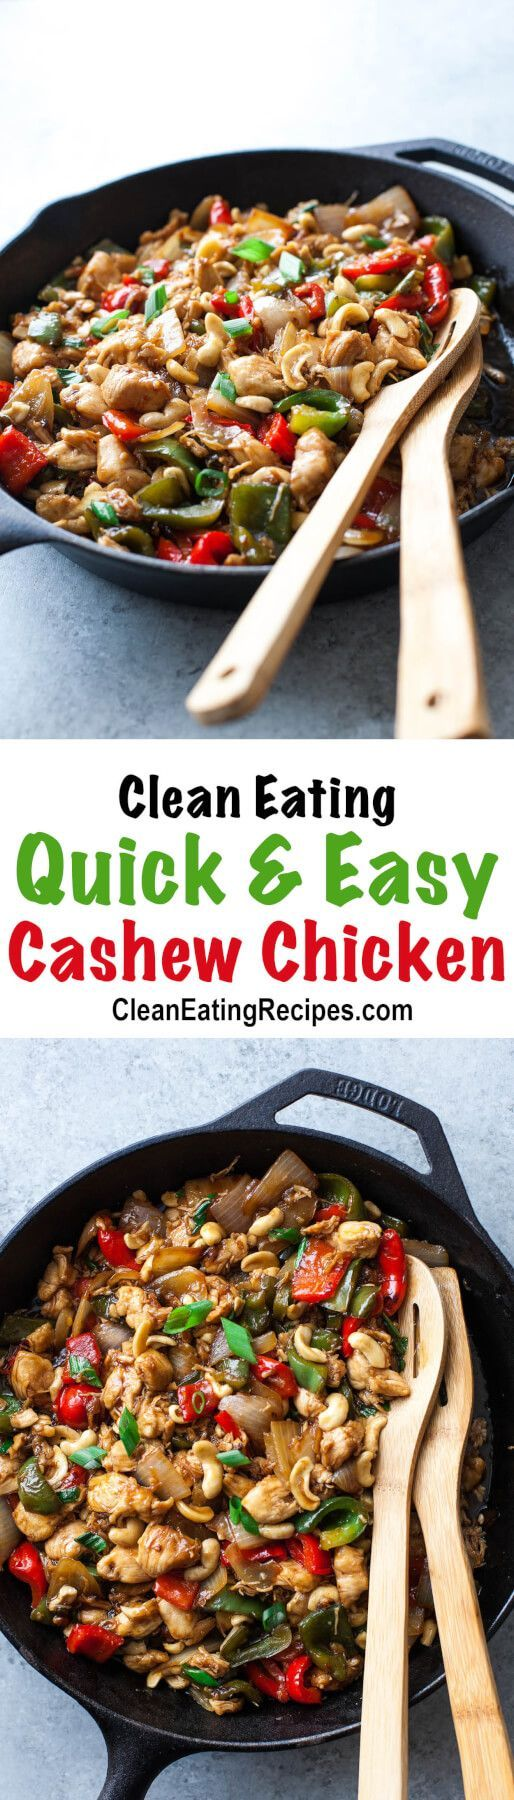 I love that I can make this Clean Eating cashew chicken recipe really fast and my entire family loves it! We add or take away ingredients all the time, based on what we have and what we're in the mood for that day.